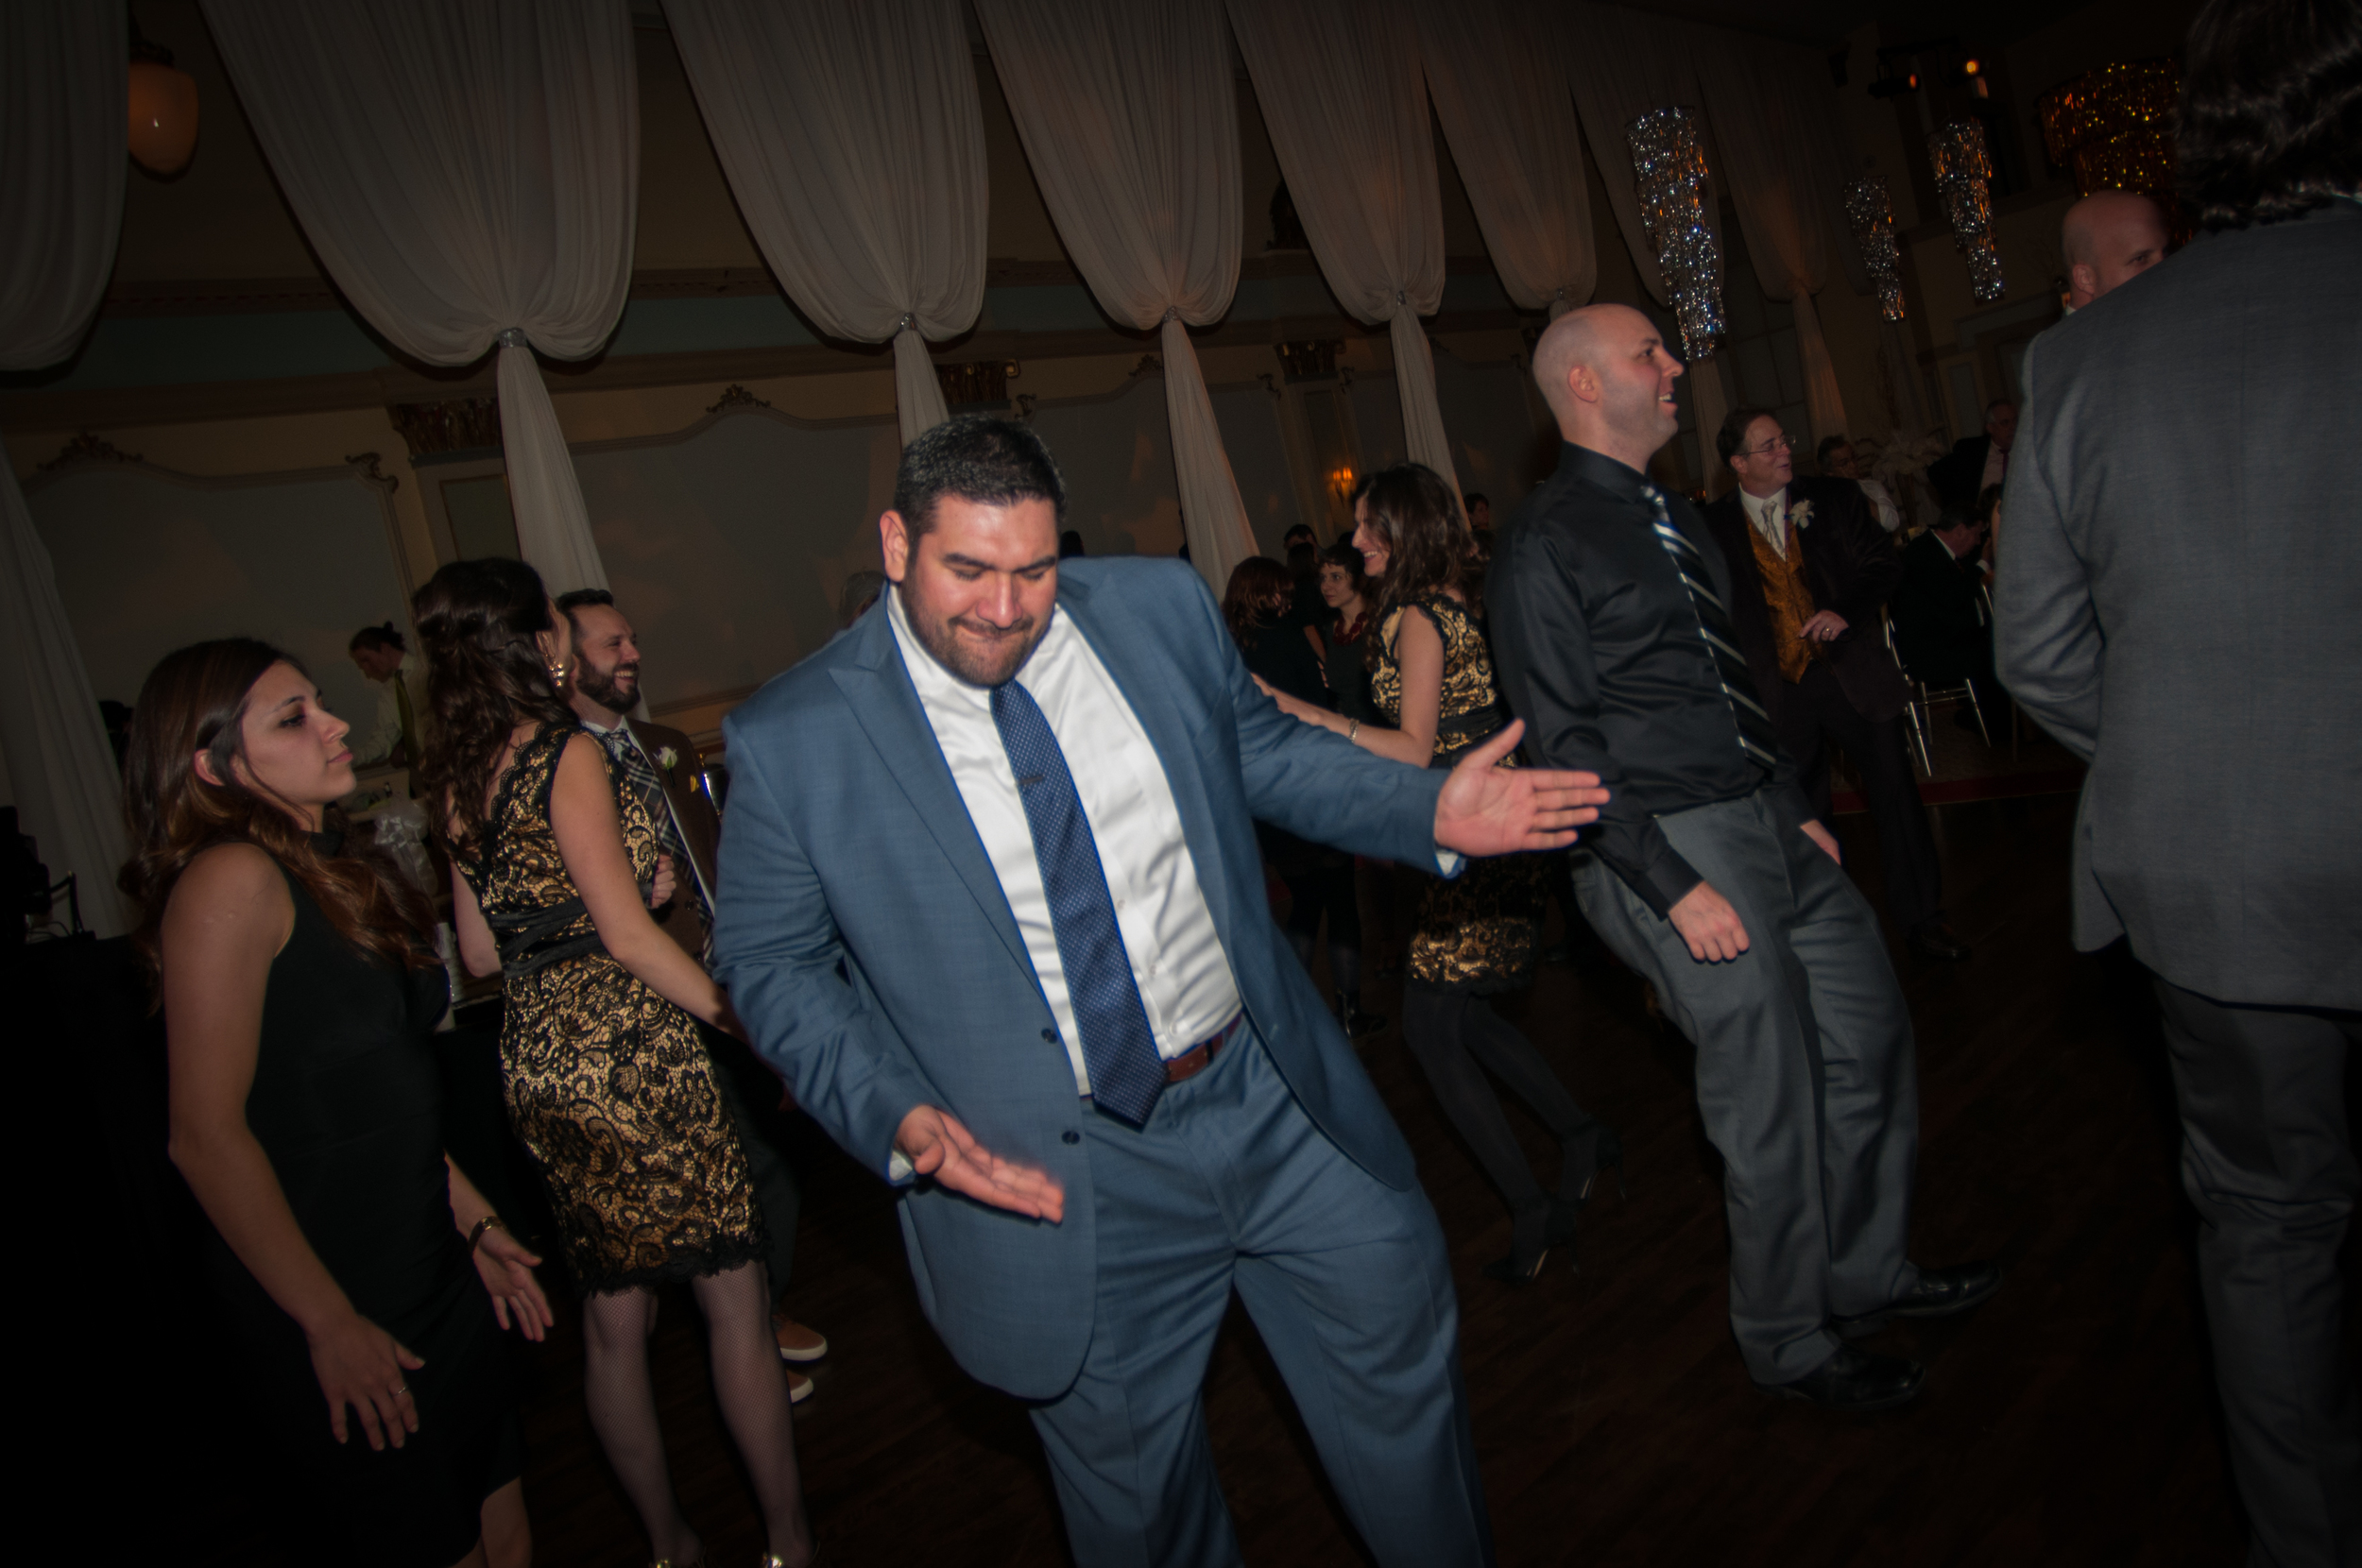 meredithdonnellyphotography-Williams Wedding 2014-544.jpg